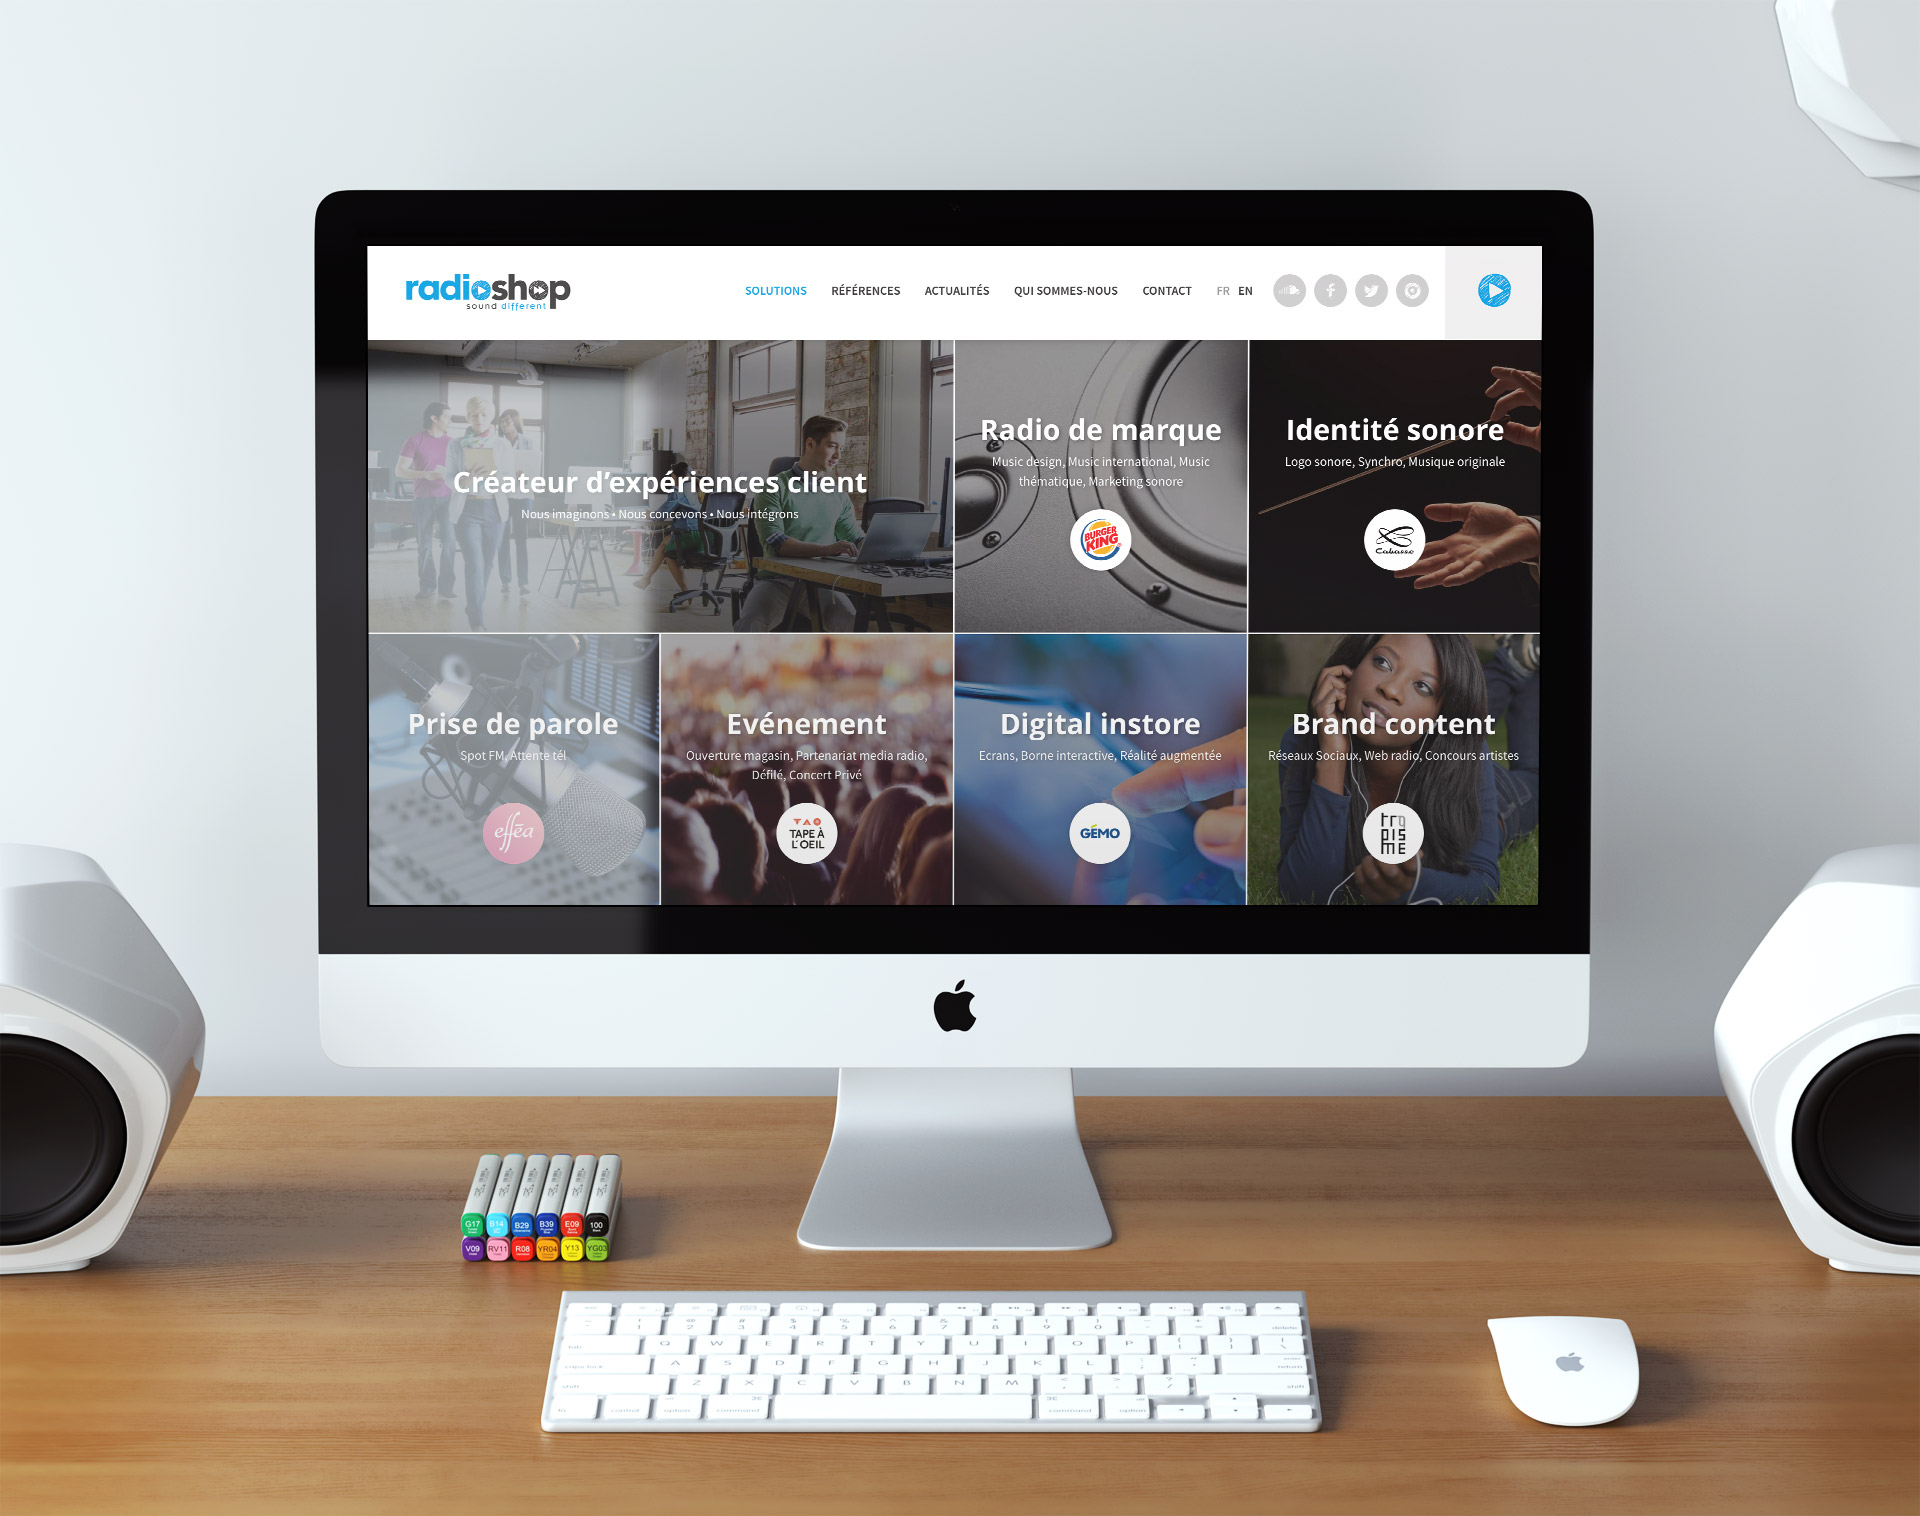 radioshop-creation-site-web-responsive-design-graphiste-montpellier-alexis-cretin